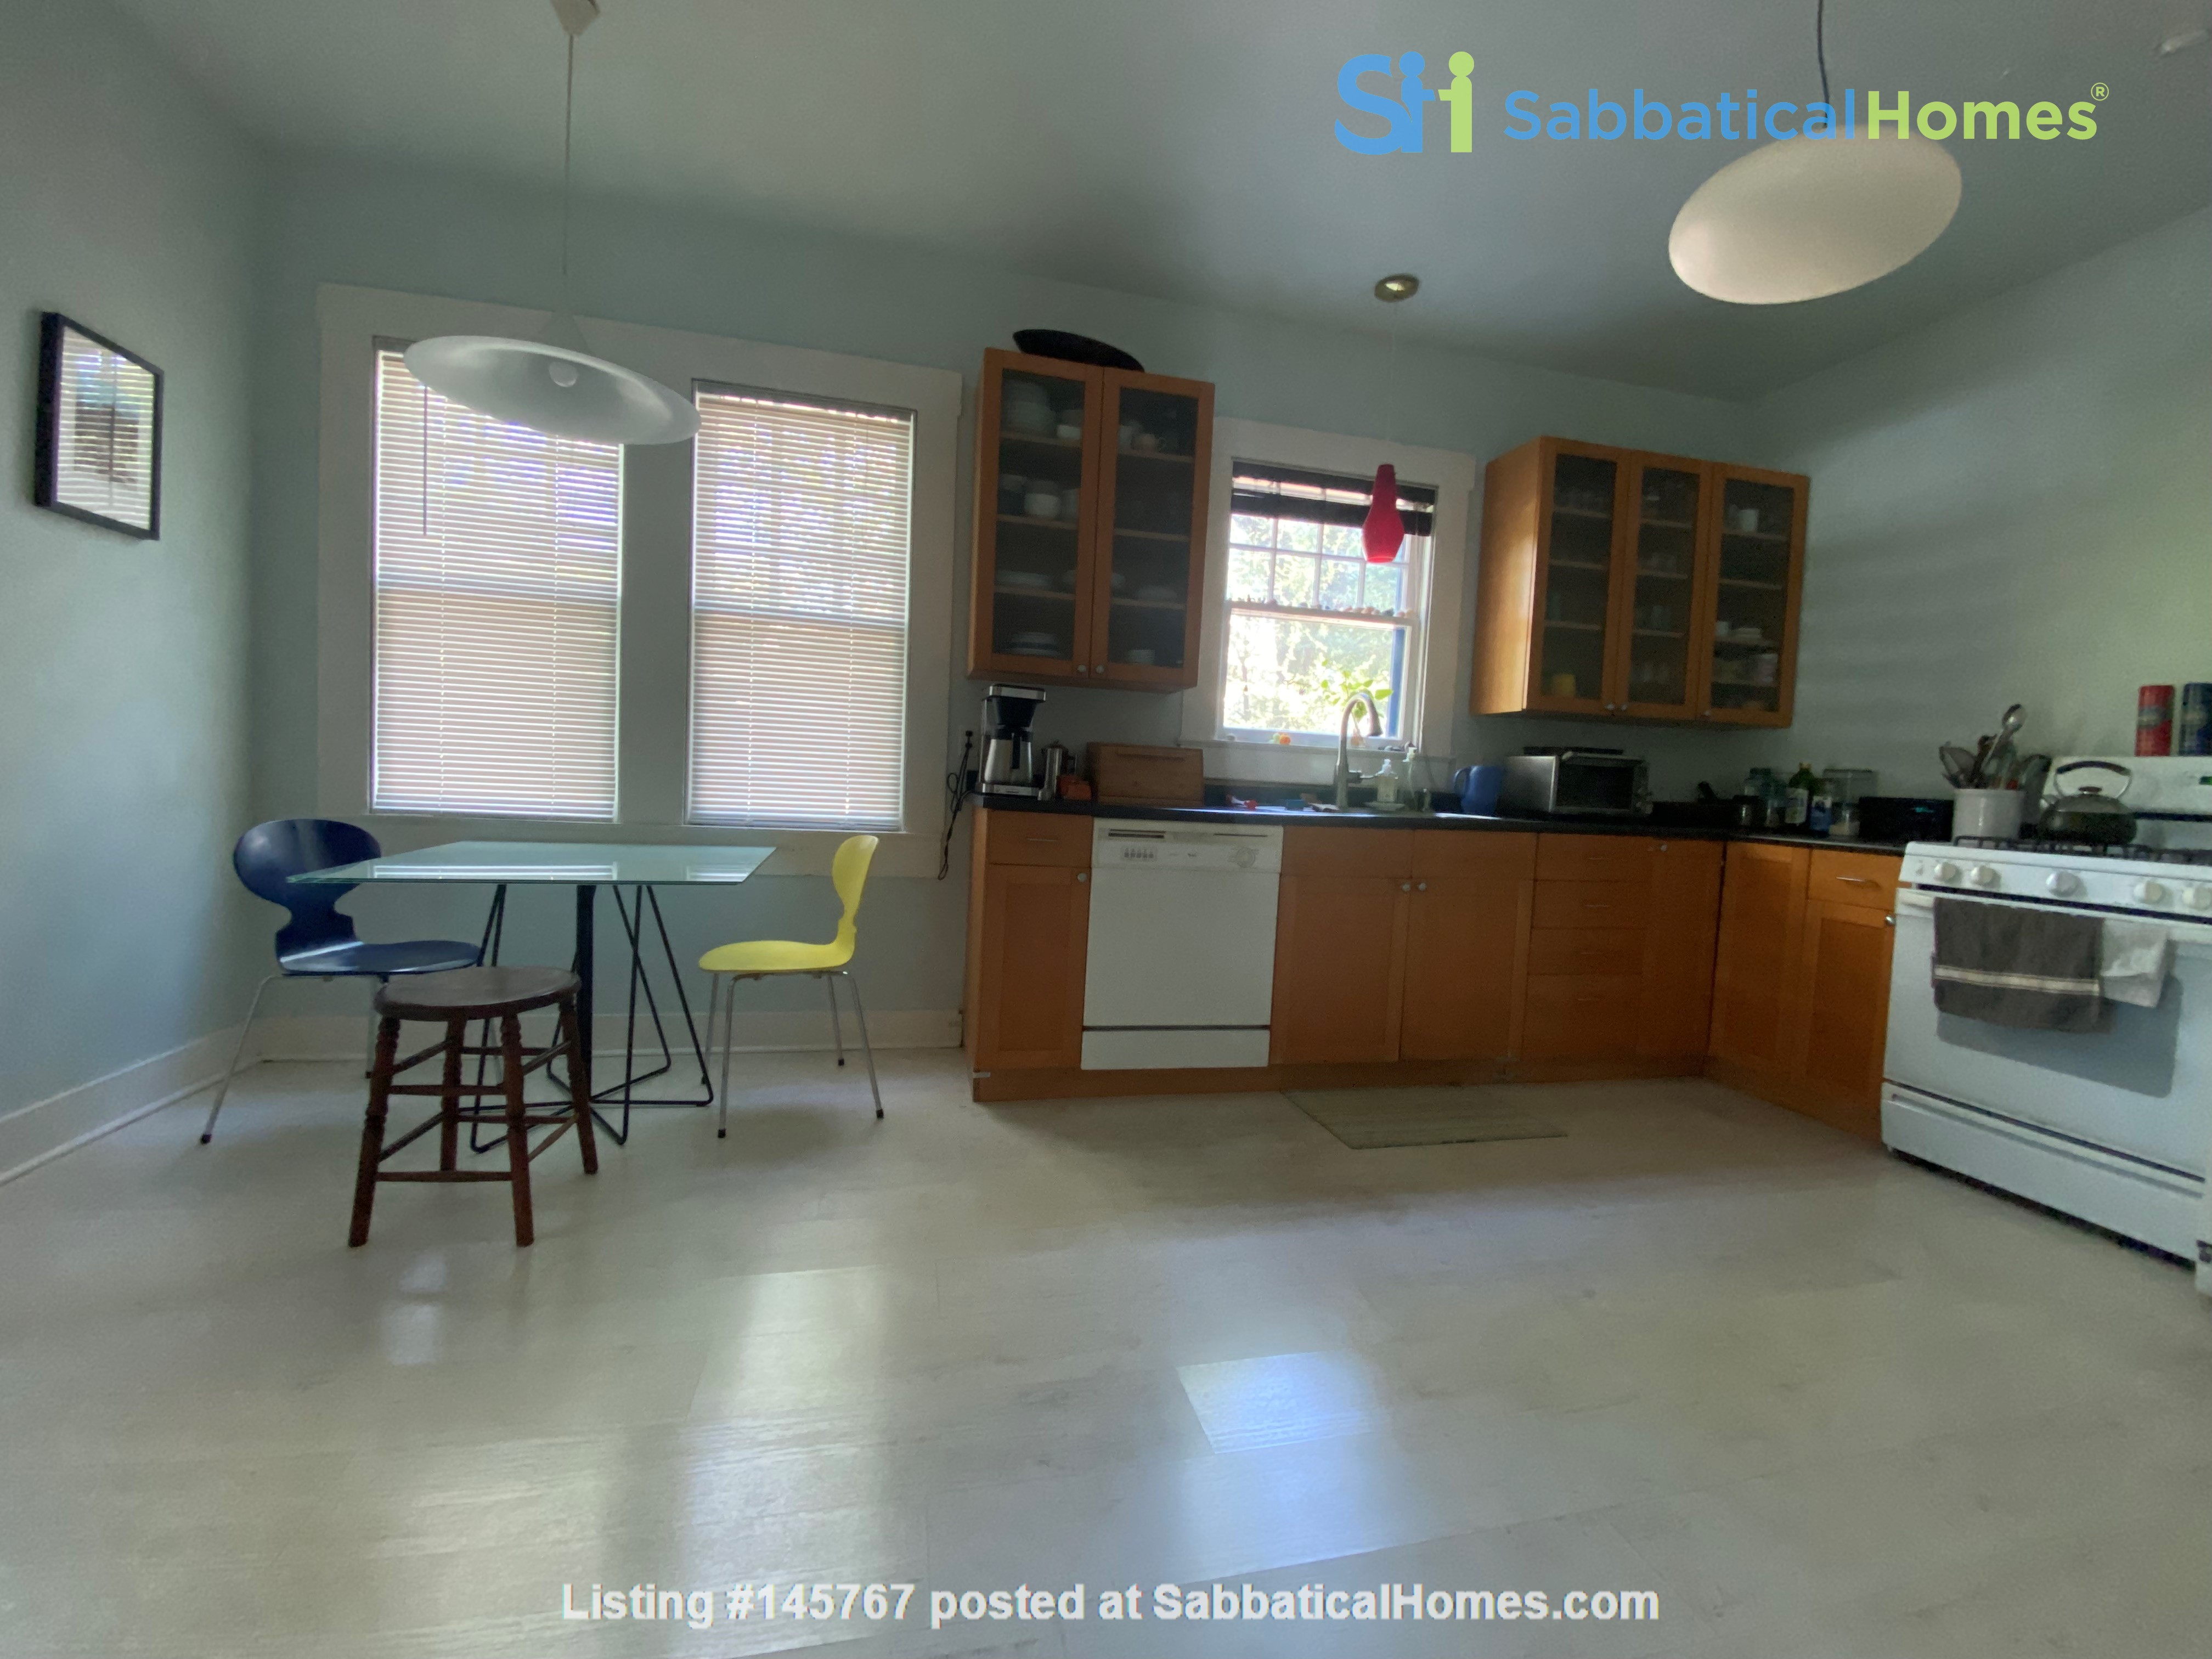 Beautiful 1920s Craftsman House (furnished, home share) Home Rental in Austin 3